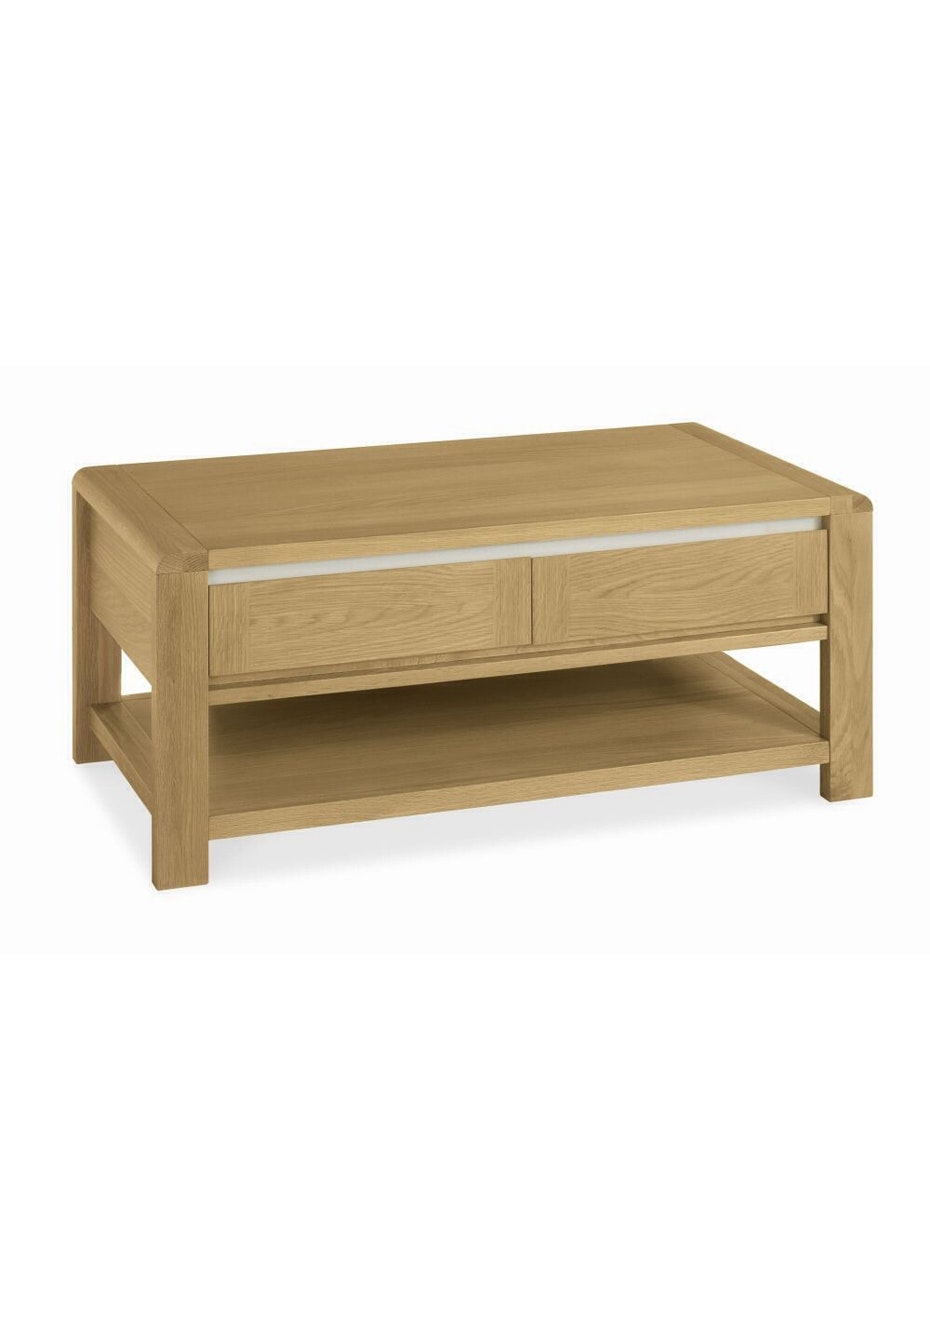 Furniture By Design - Casa Oak Coffee Table- Light Oak